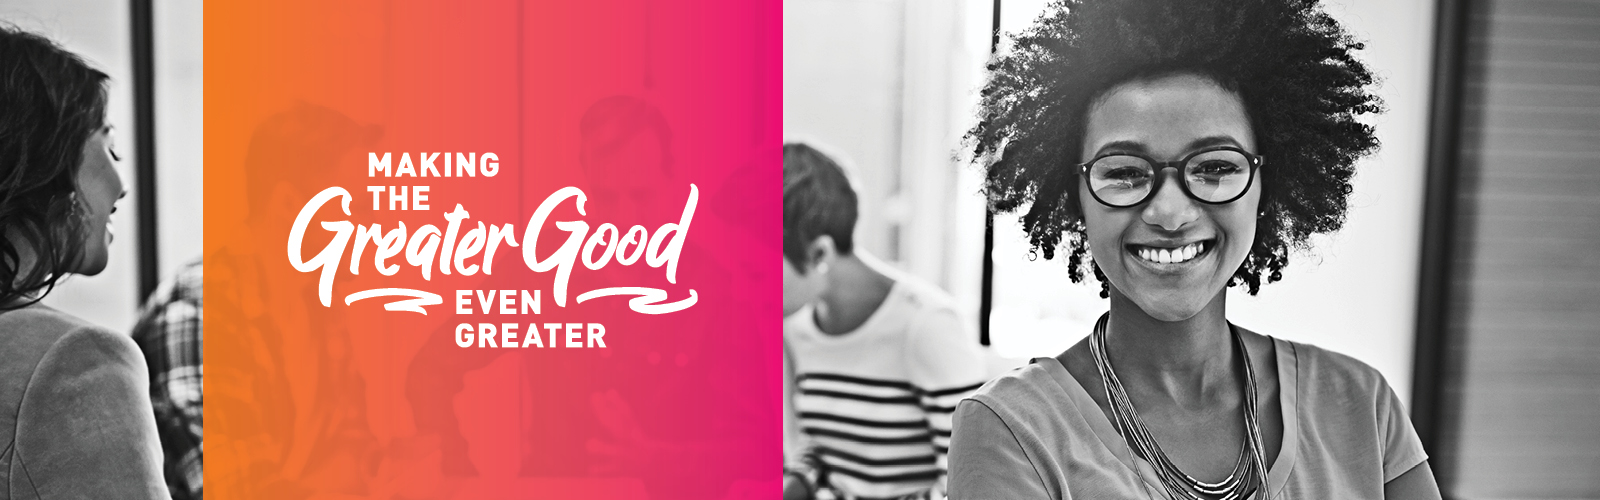 Greater Good program